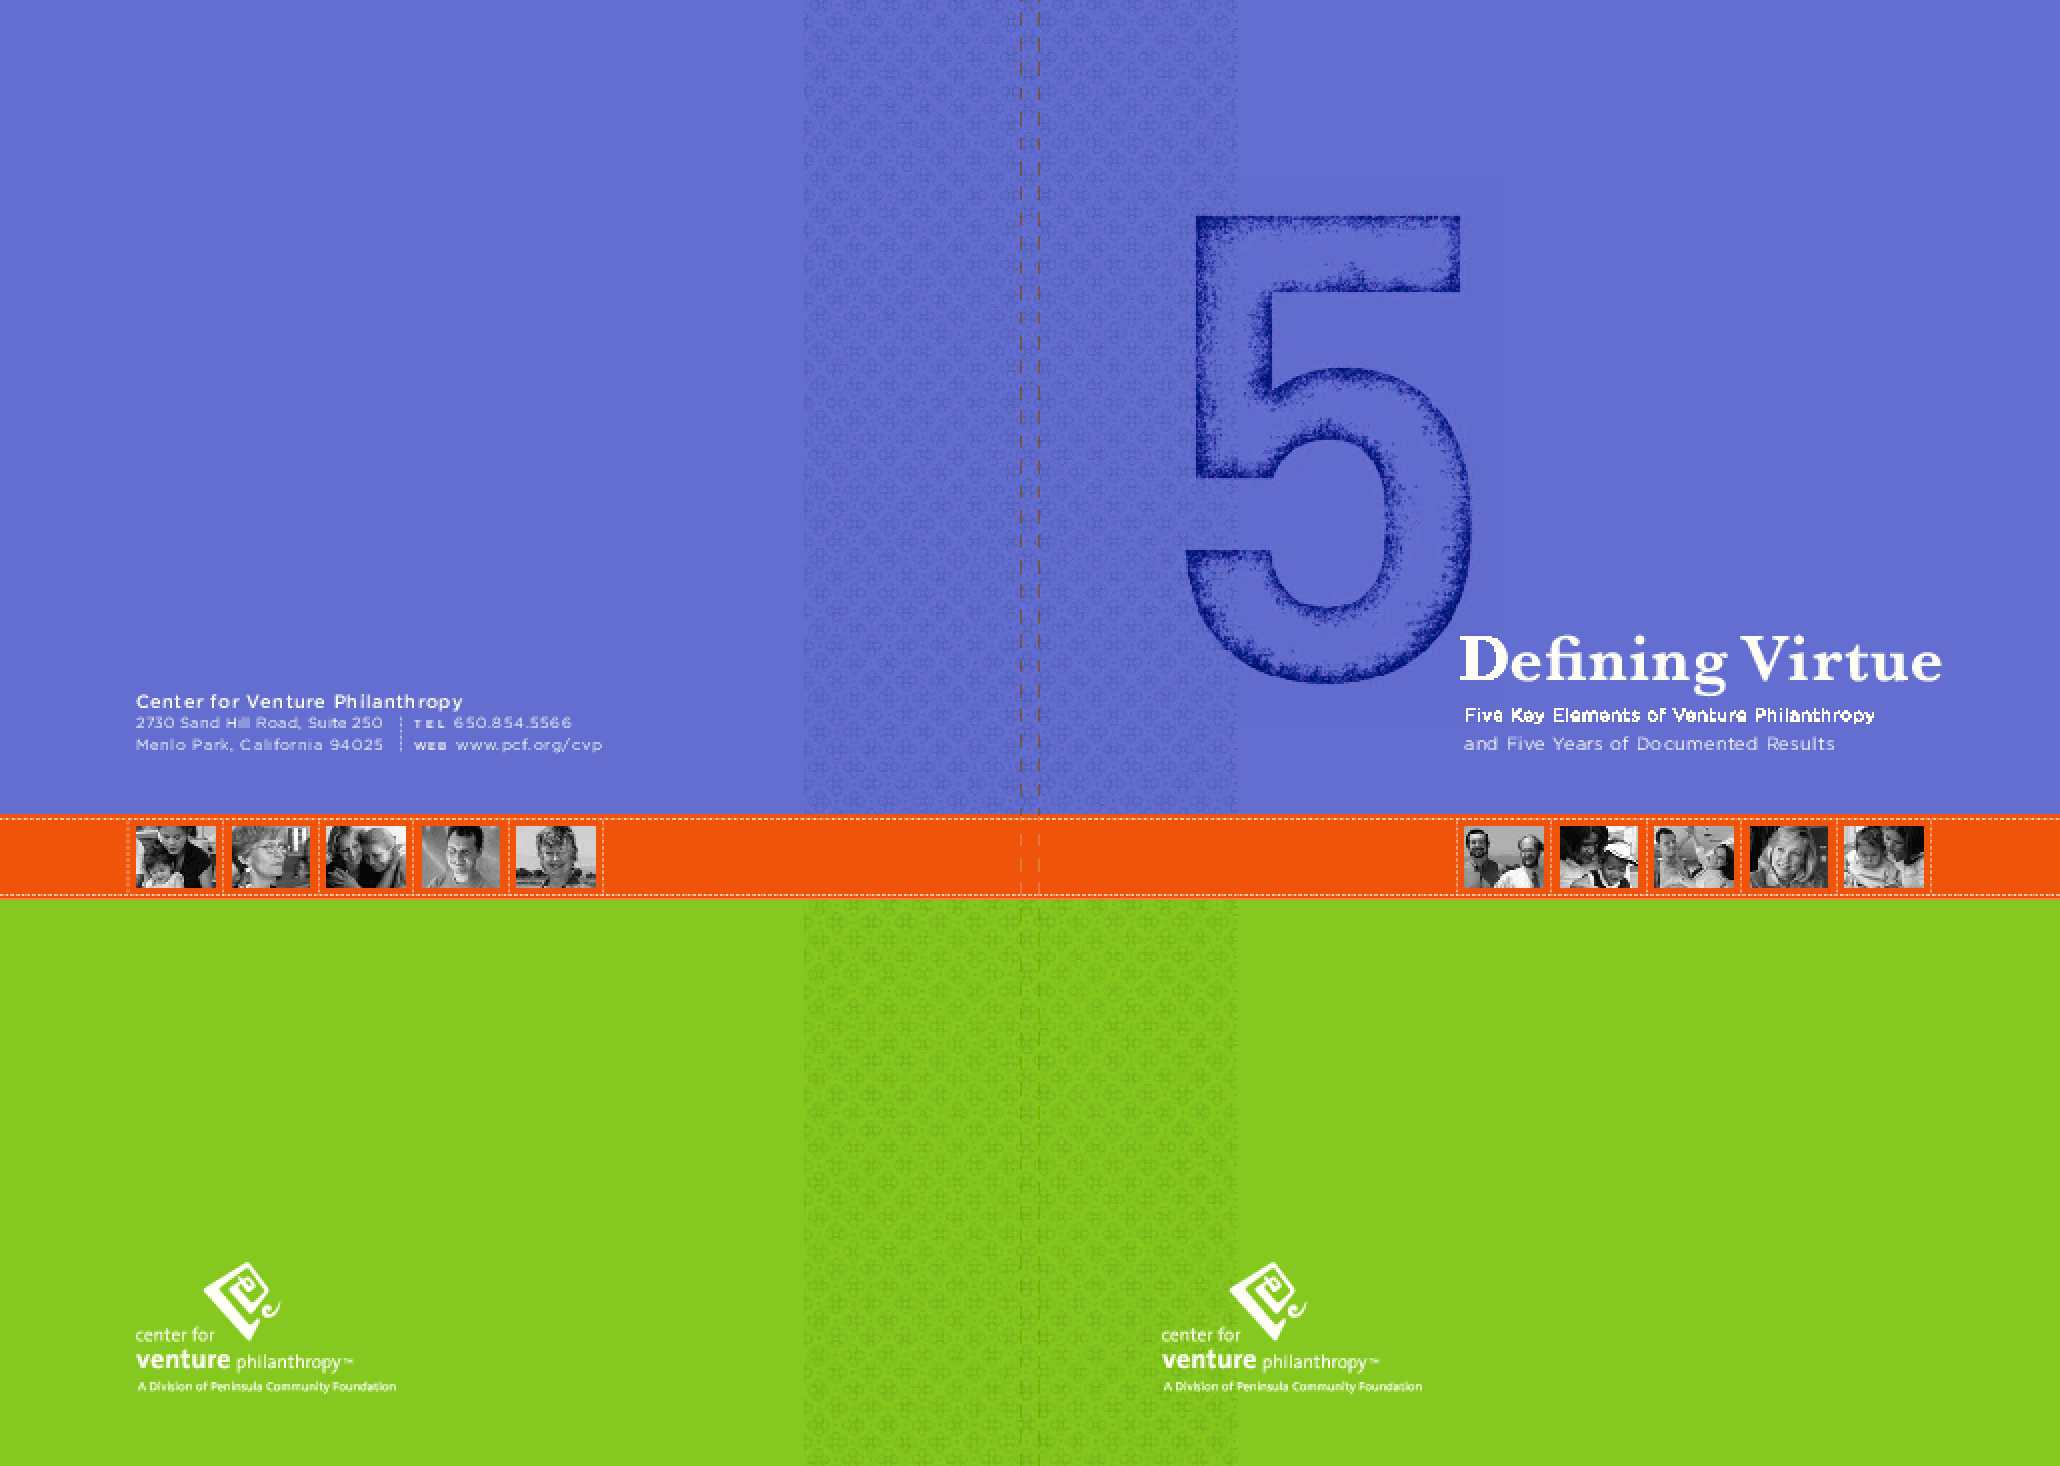 Defining Virtue: Five Key Elements of Venture Philanthropy and Five Years of Documented Results